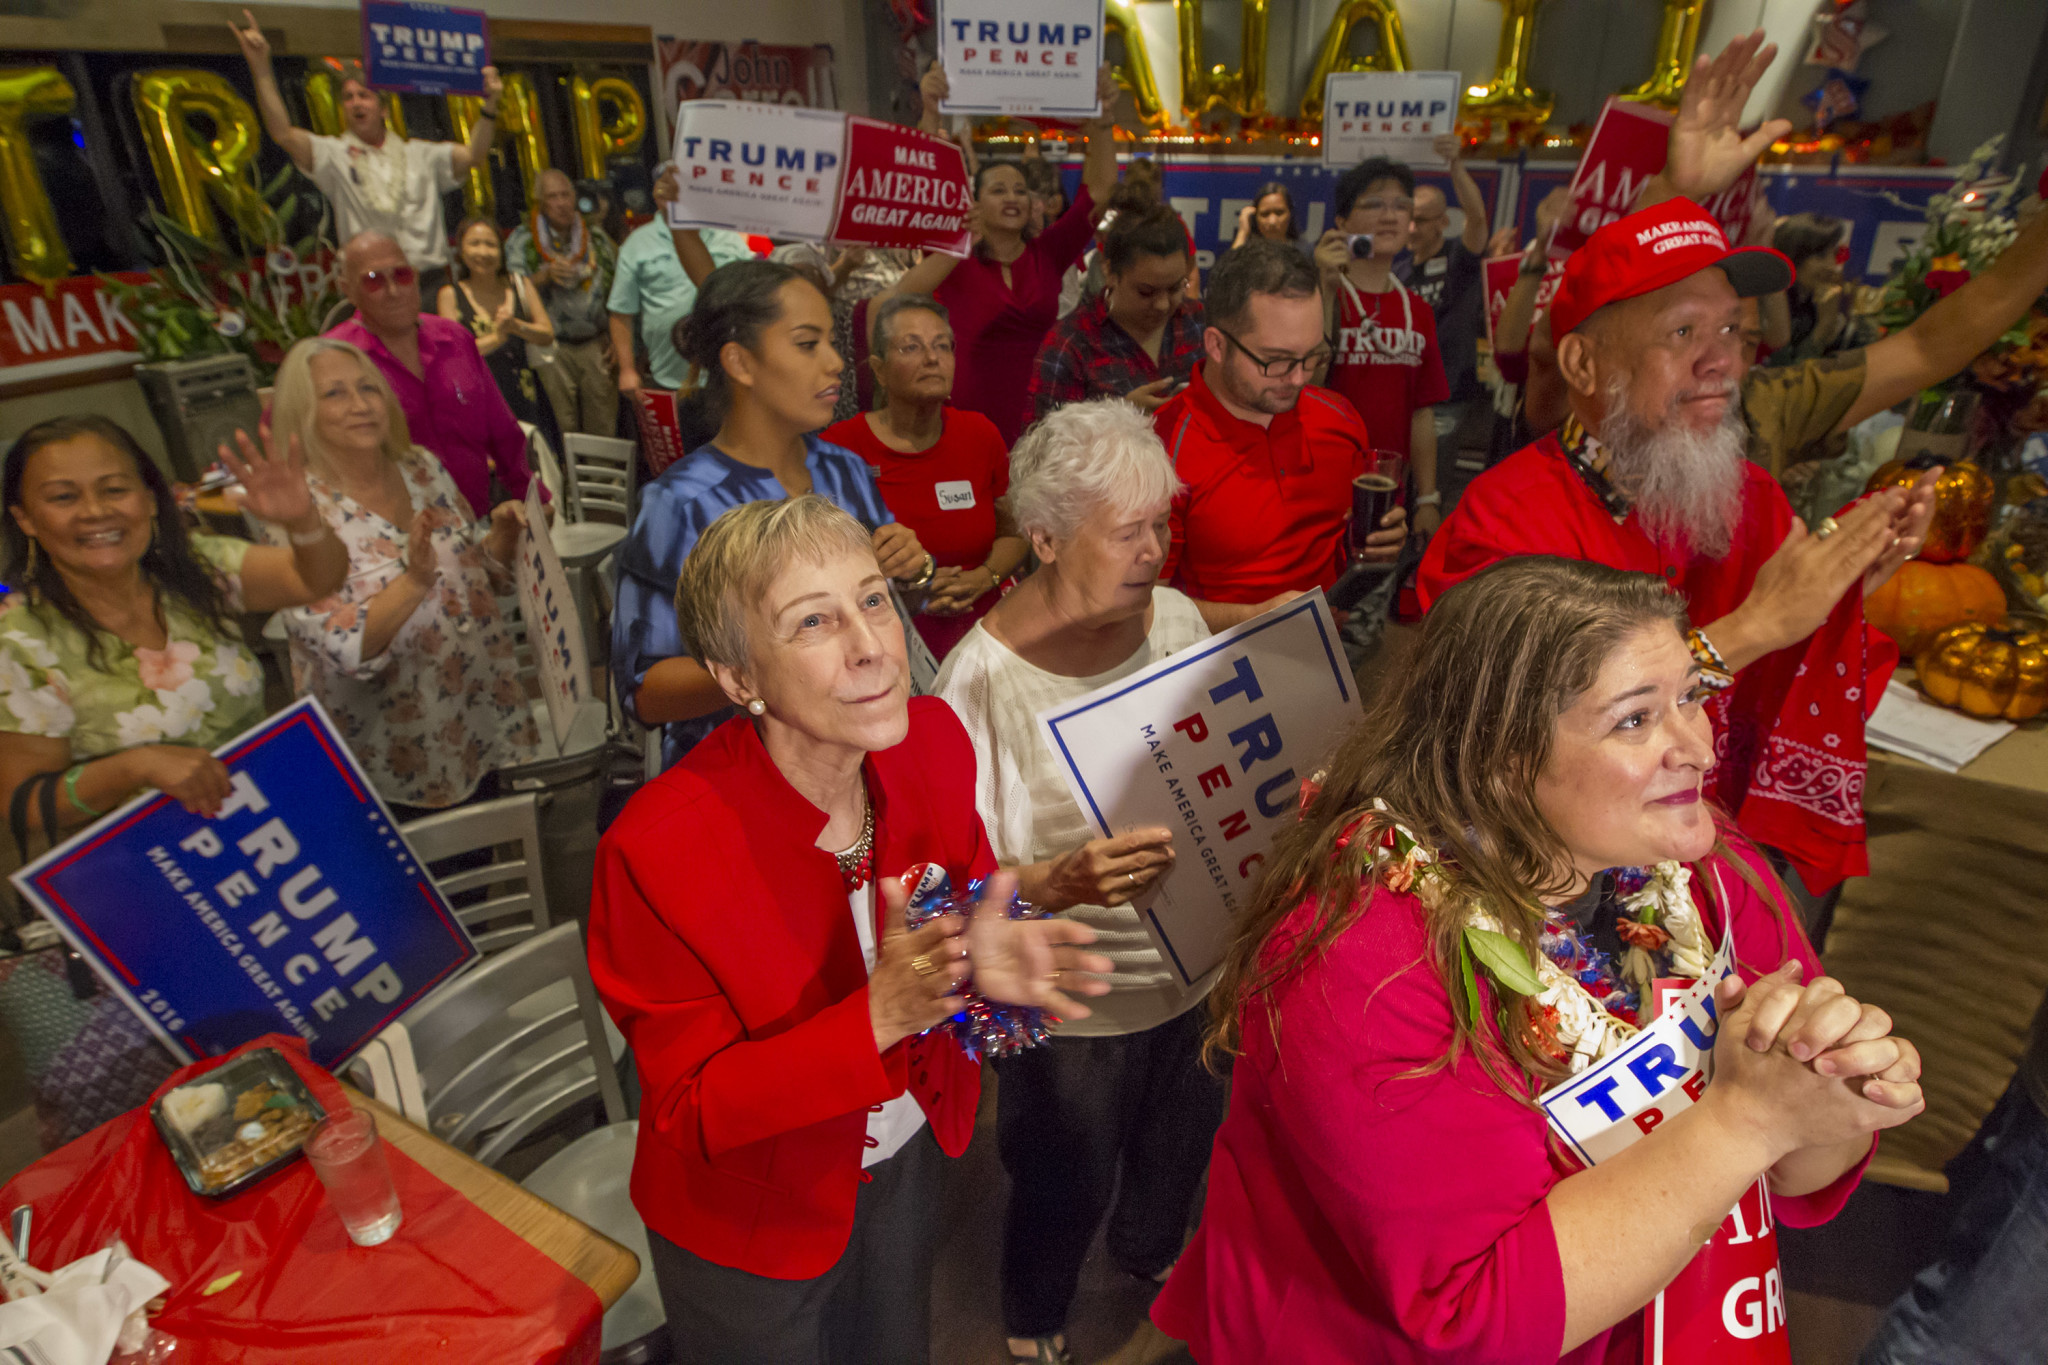 <p>The same announcement was welcomed by Trump supporters gathered at the Irons Table + Tavern restaurant. — Eugene Tanner/Civil Beat</p>